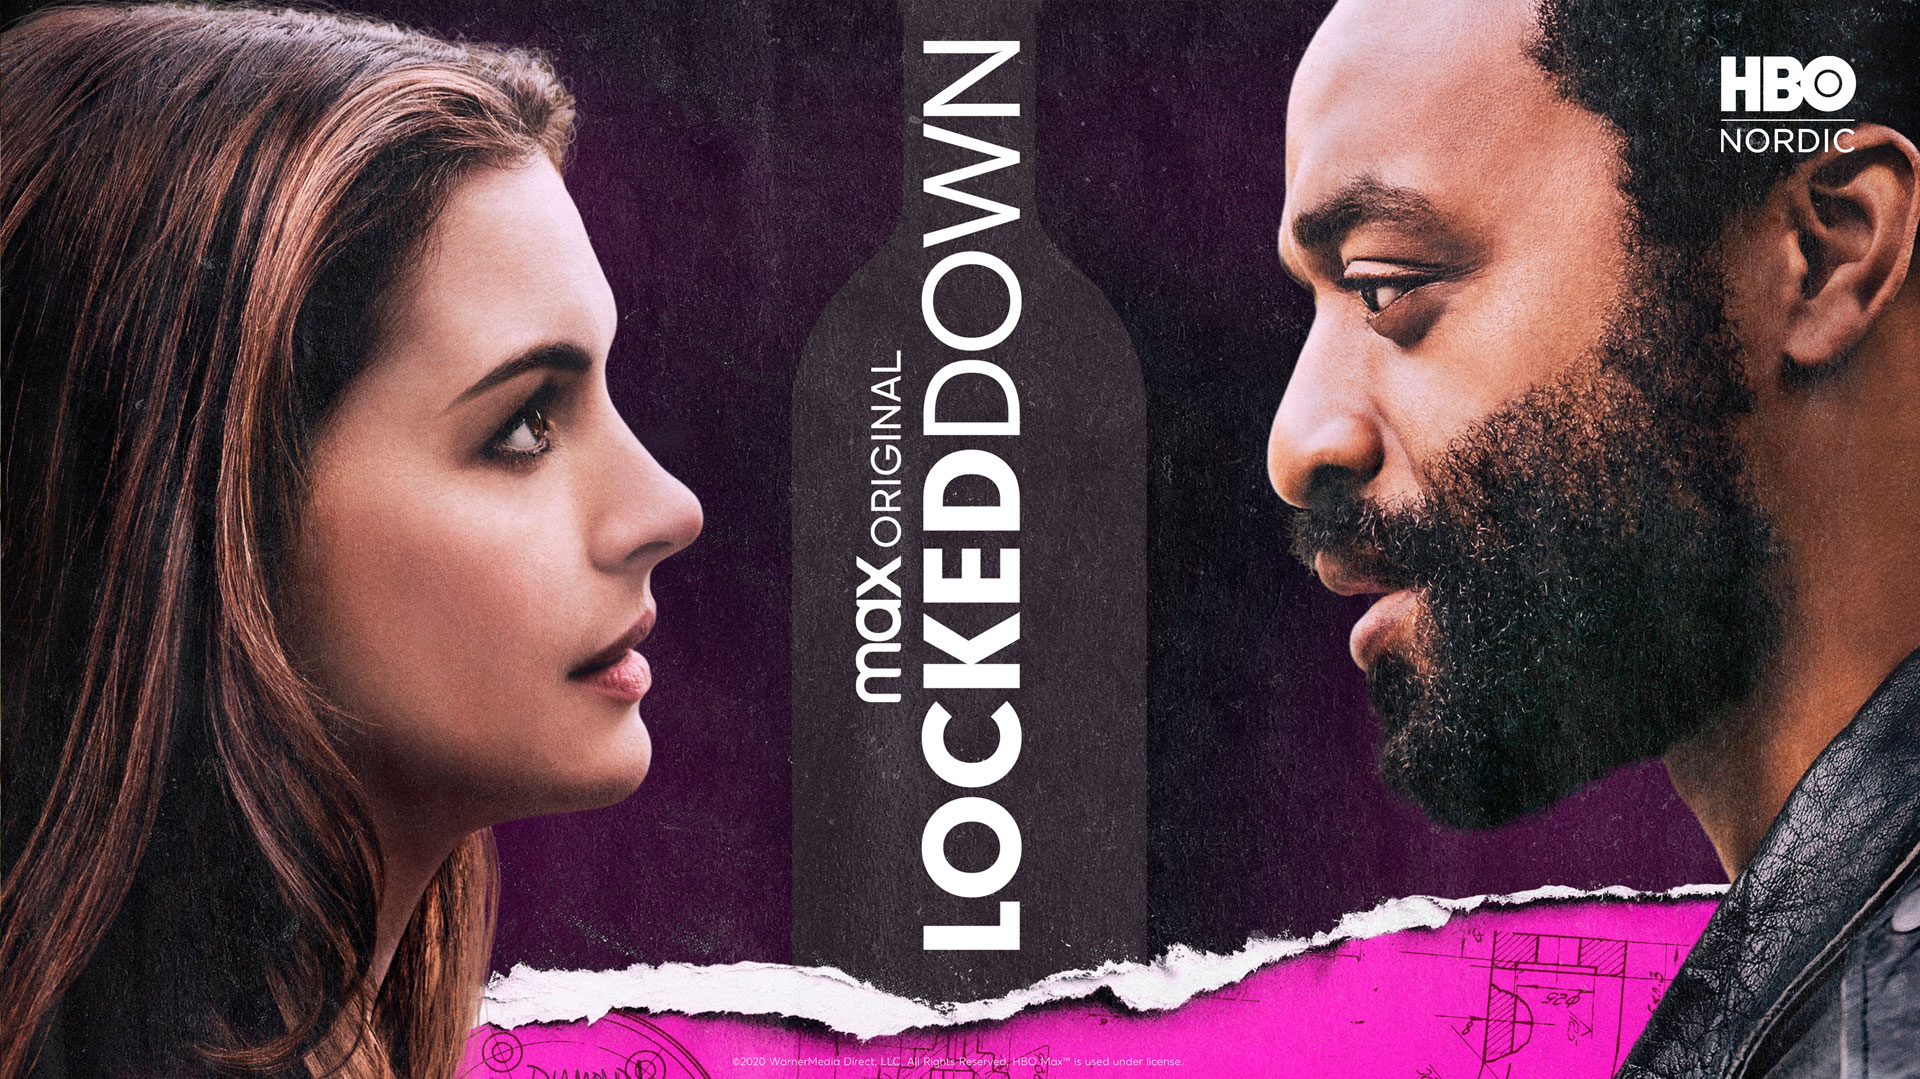 Locked-Down-HBO-Nordic